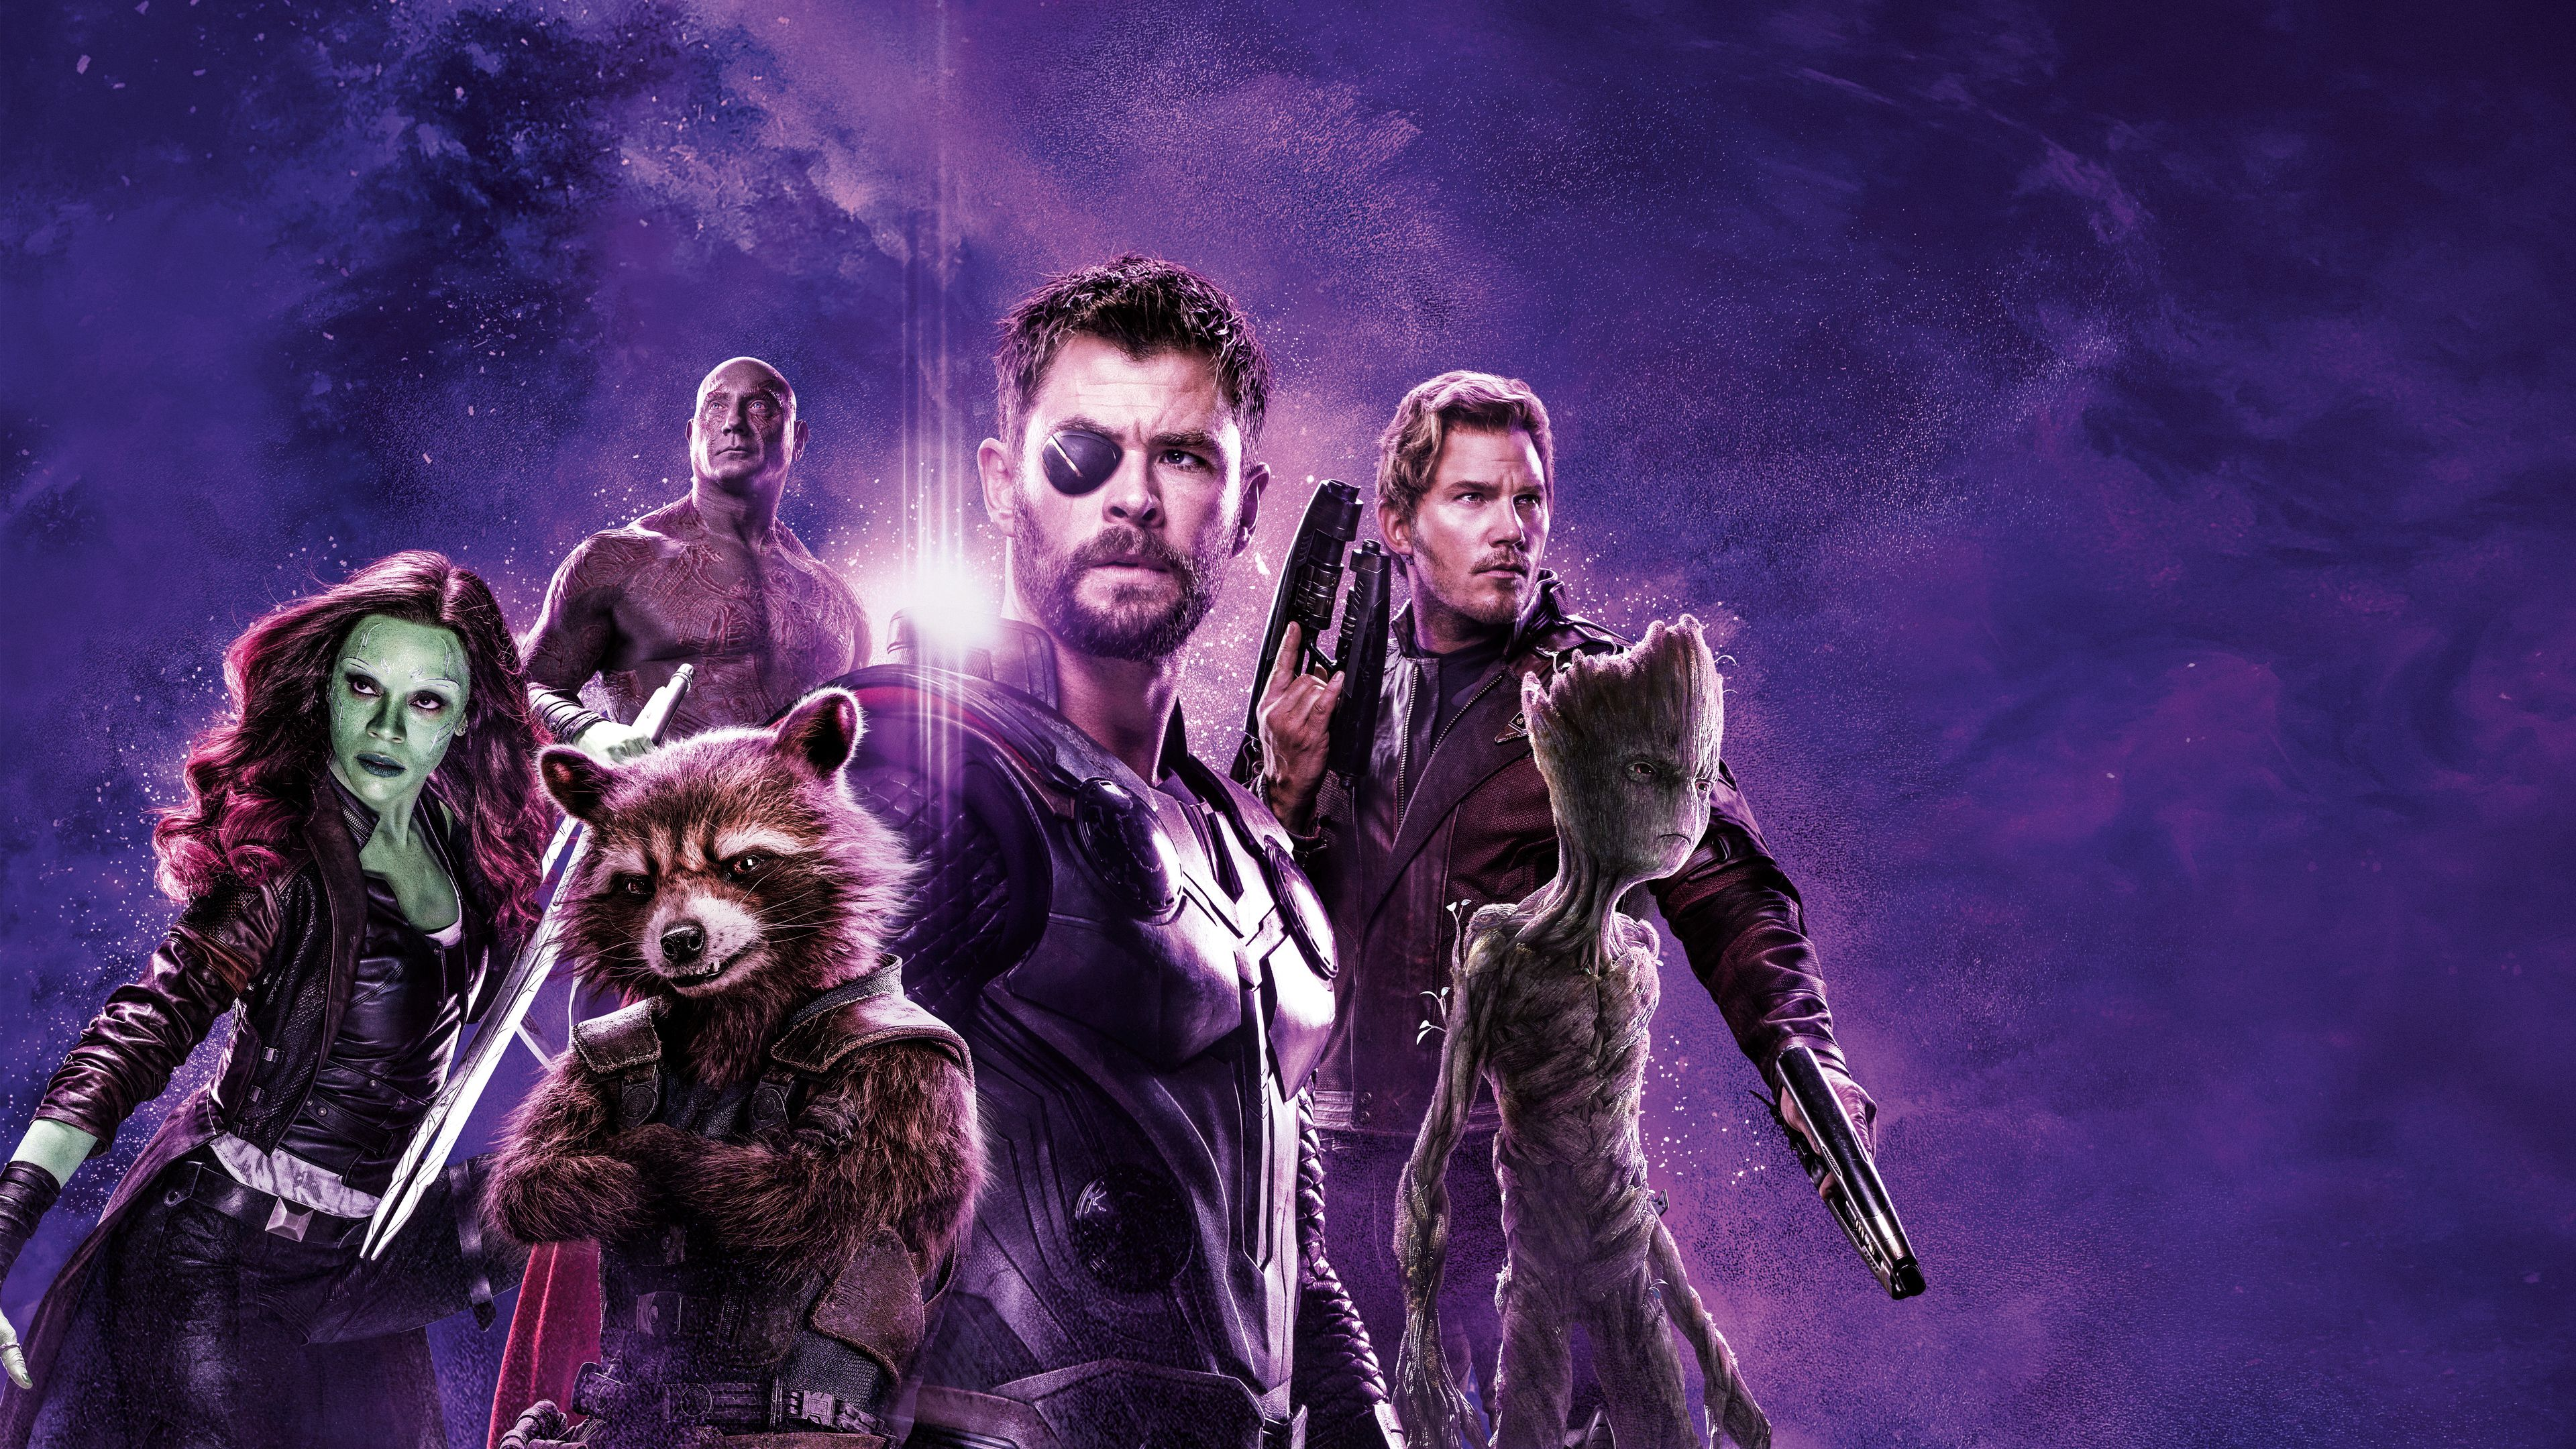 Avengers Infinity War Power Stone Poster 4k Thor Wallpapers Star Lord Wallpapers Rocket Raccoon Wallpapers P Avengers Movie Wallpapers Avengers Infinity War